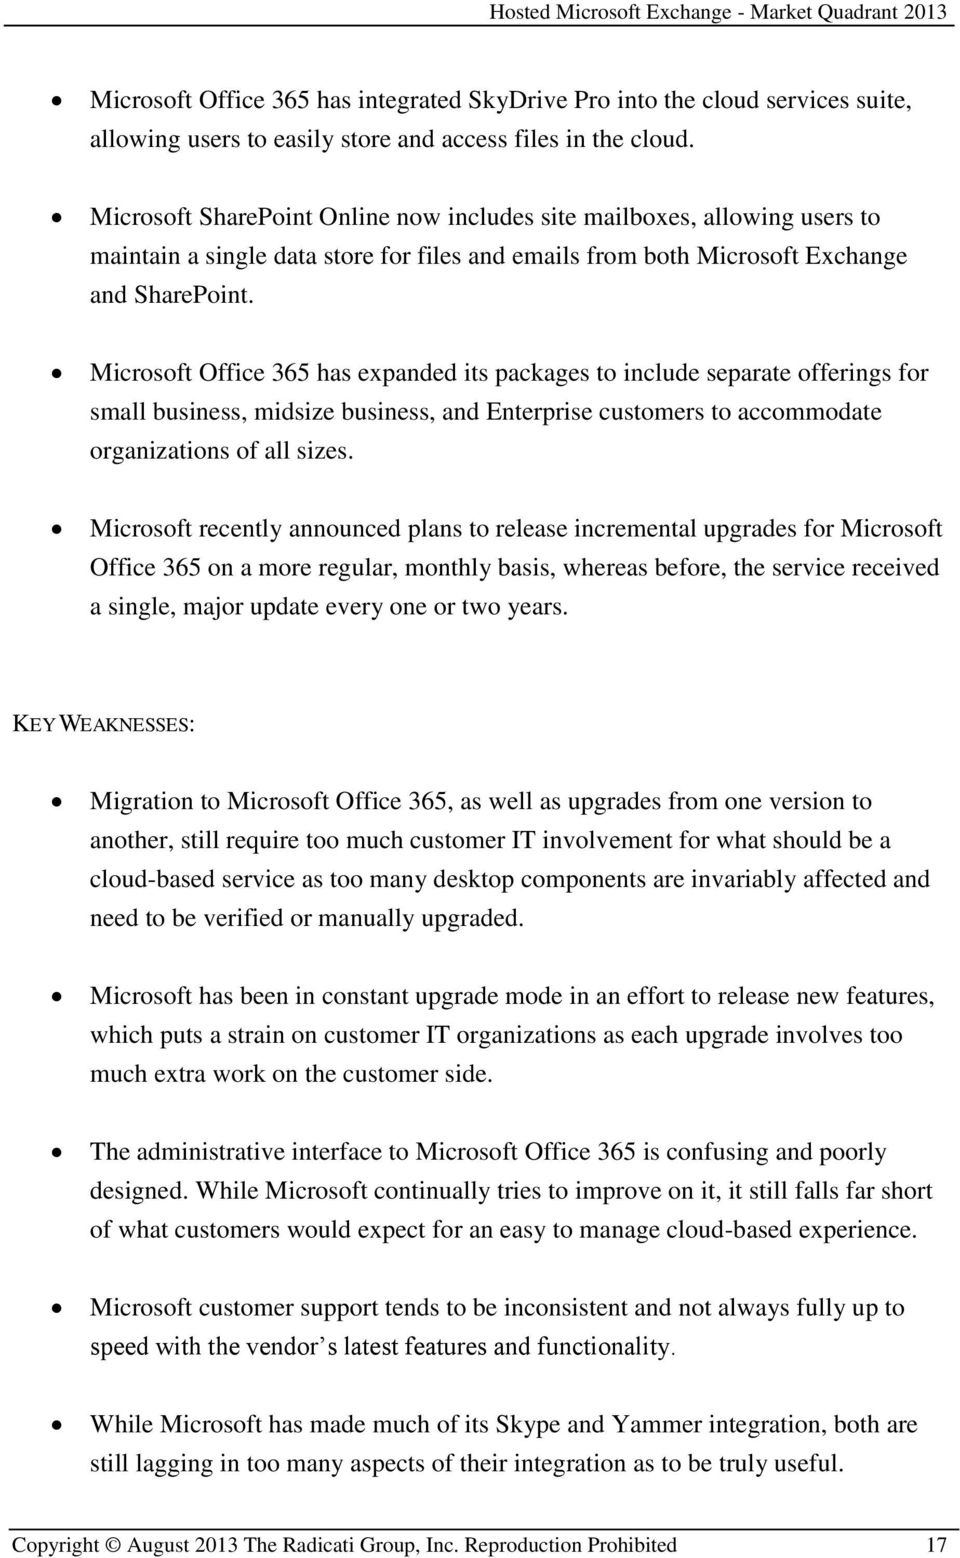 Microsoft Office 365 has expanded its packages to include separate offerings for small business, midsize business, and Enterprise customers to accommodate organizations of all sizes.